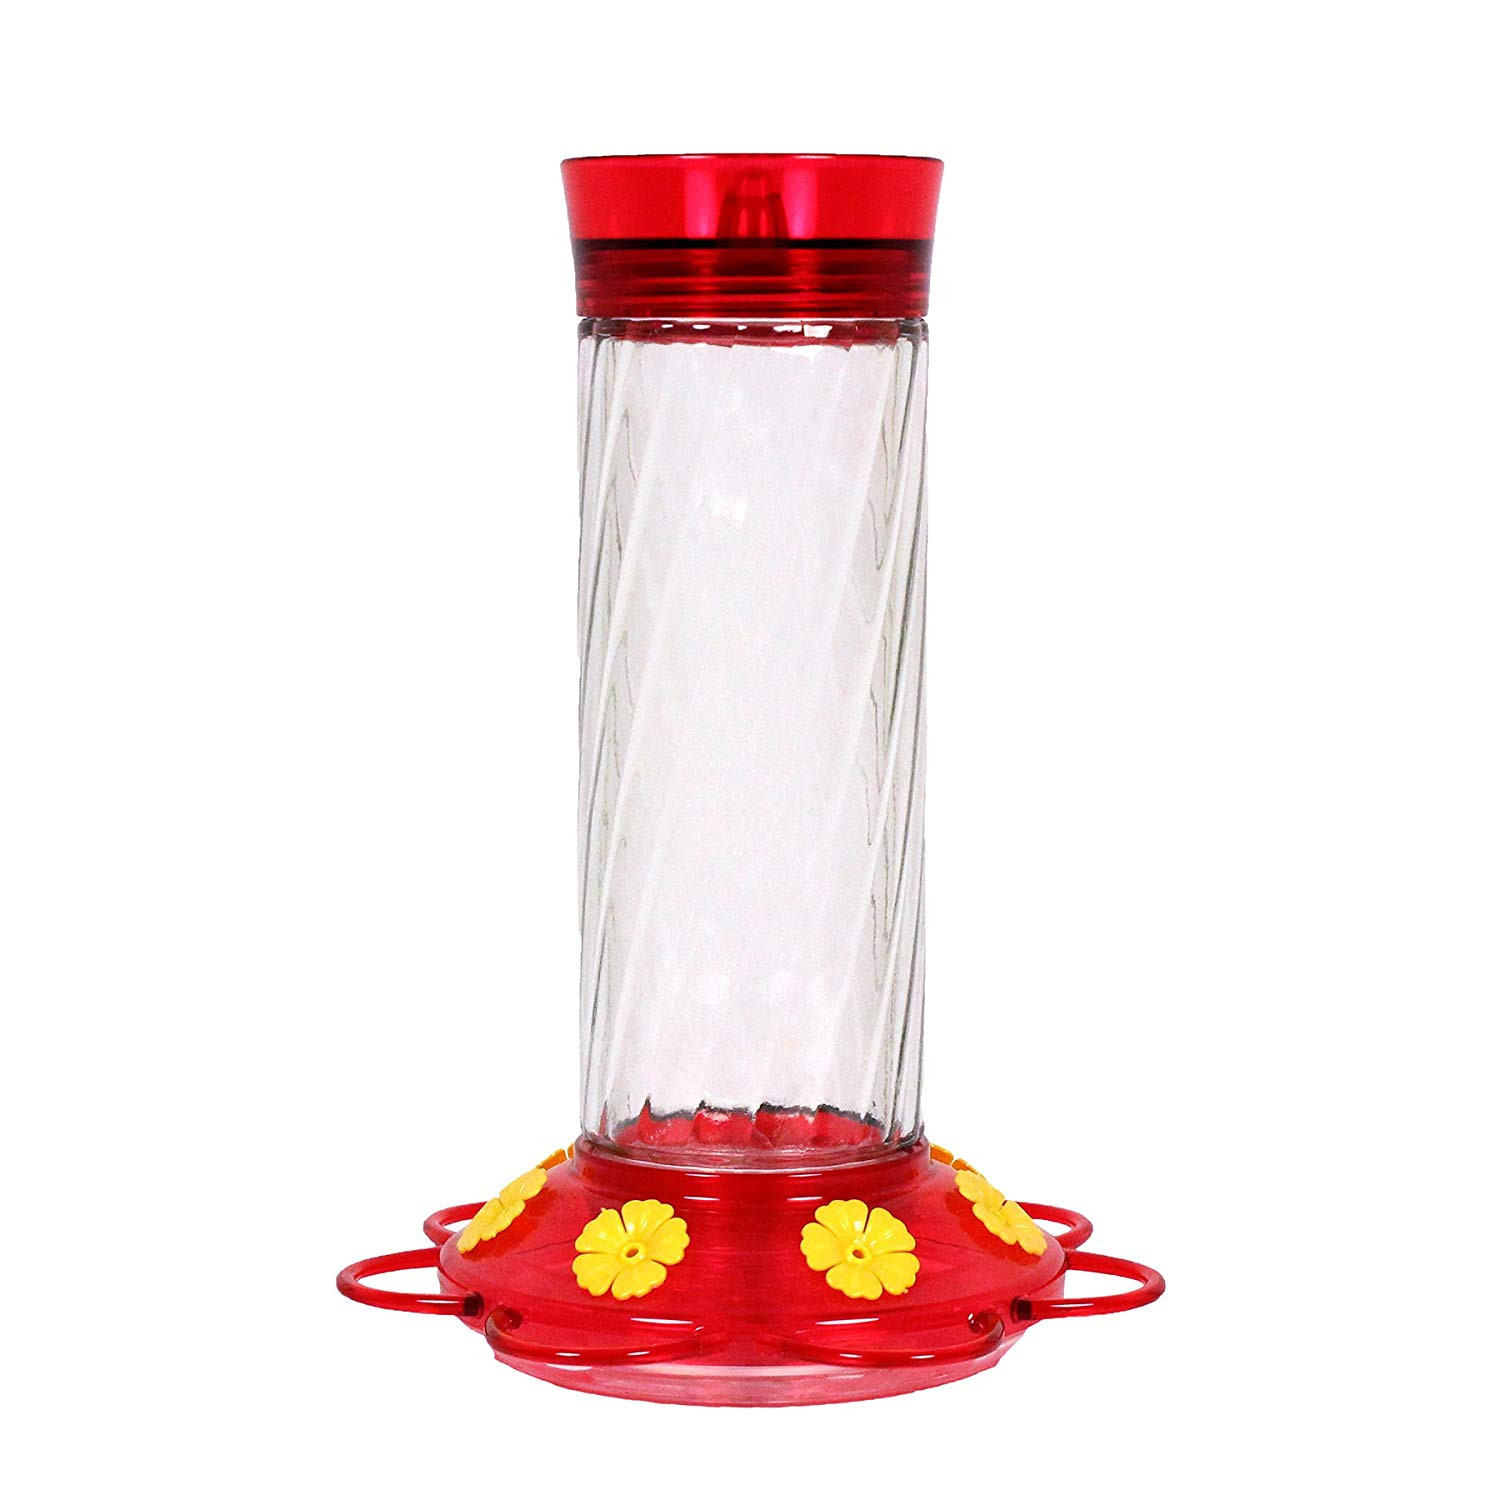 amazon clear glass vases of amazon hummingbird feeders www topsimages com for more birds hummingbird feeder glass hummingbird feeders jpg 1500x1500 amazon hummingbird feeders